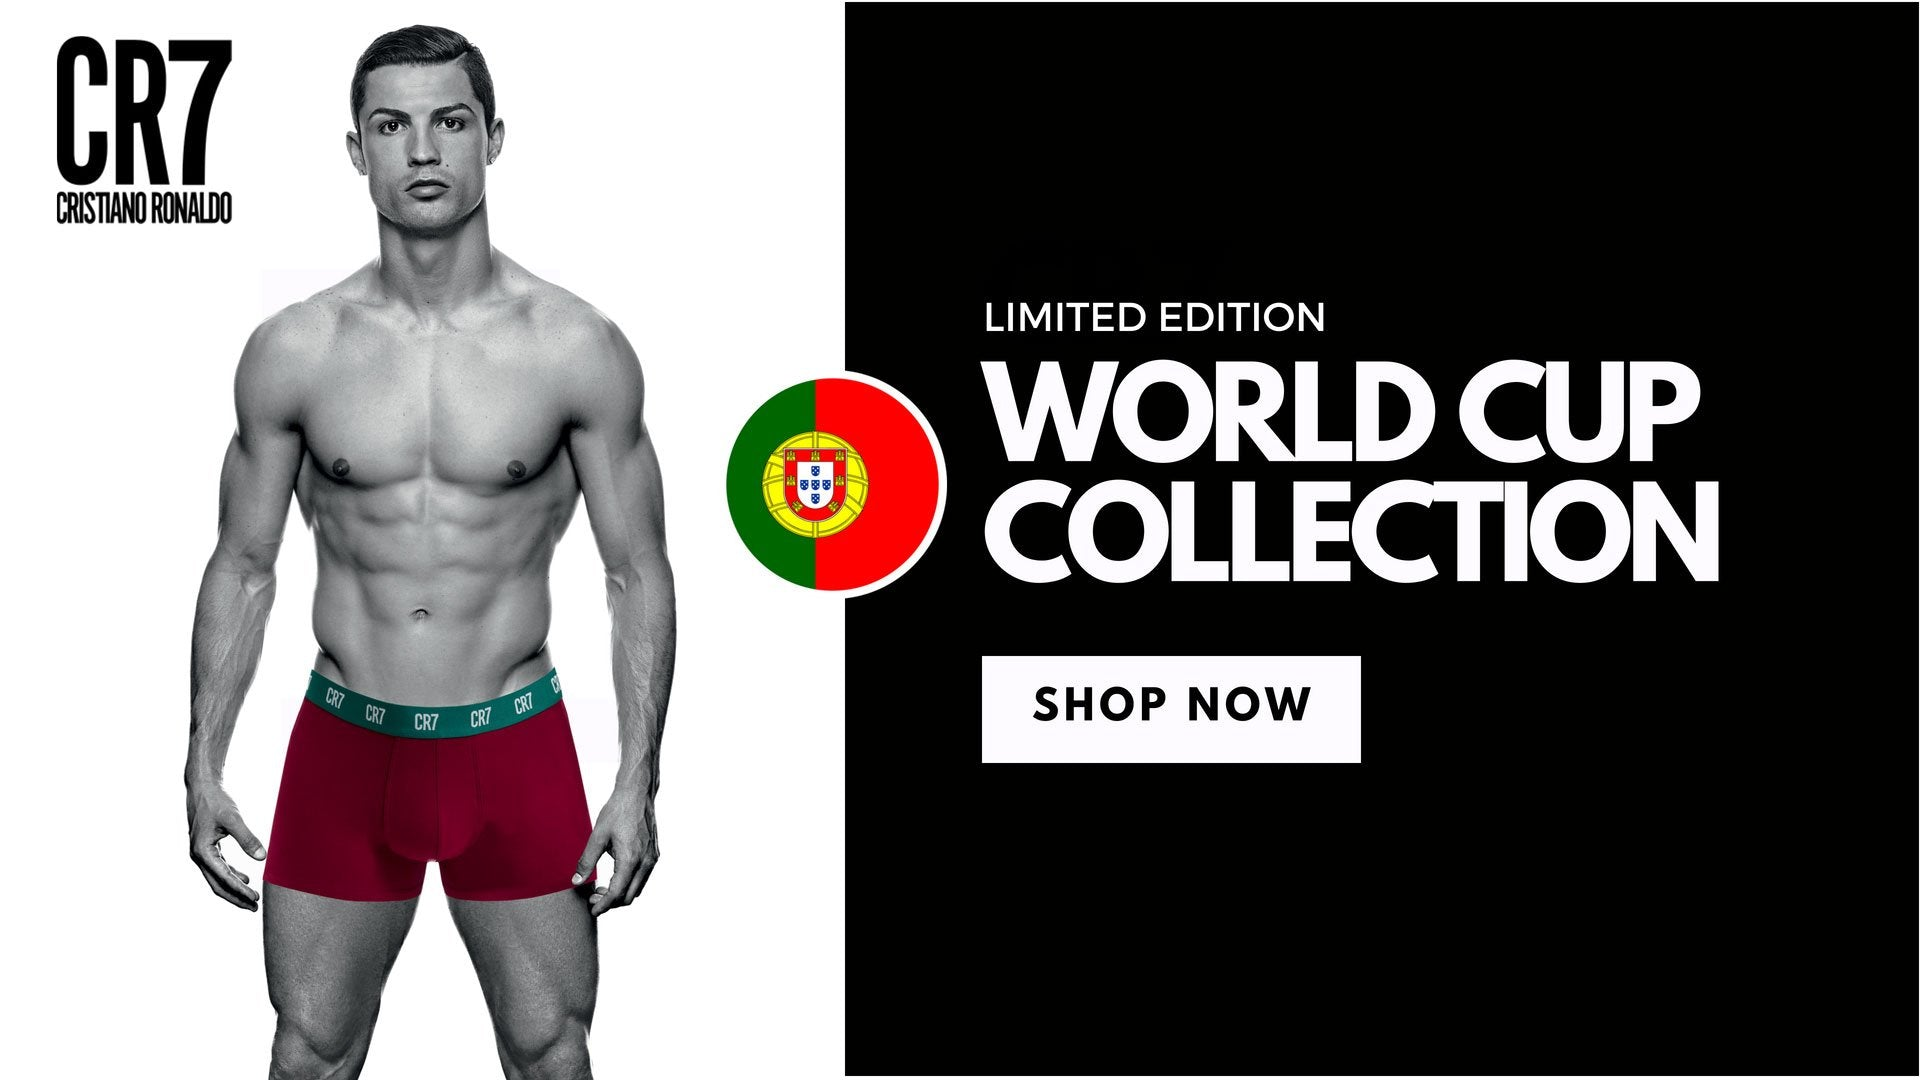 Featured Products. Previous. CR7 Mens Cotton Stretch Underwear 3 Pack -  Black 2661b33d5